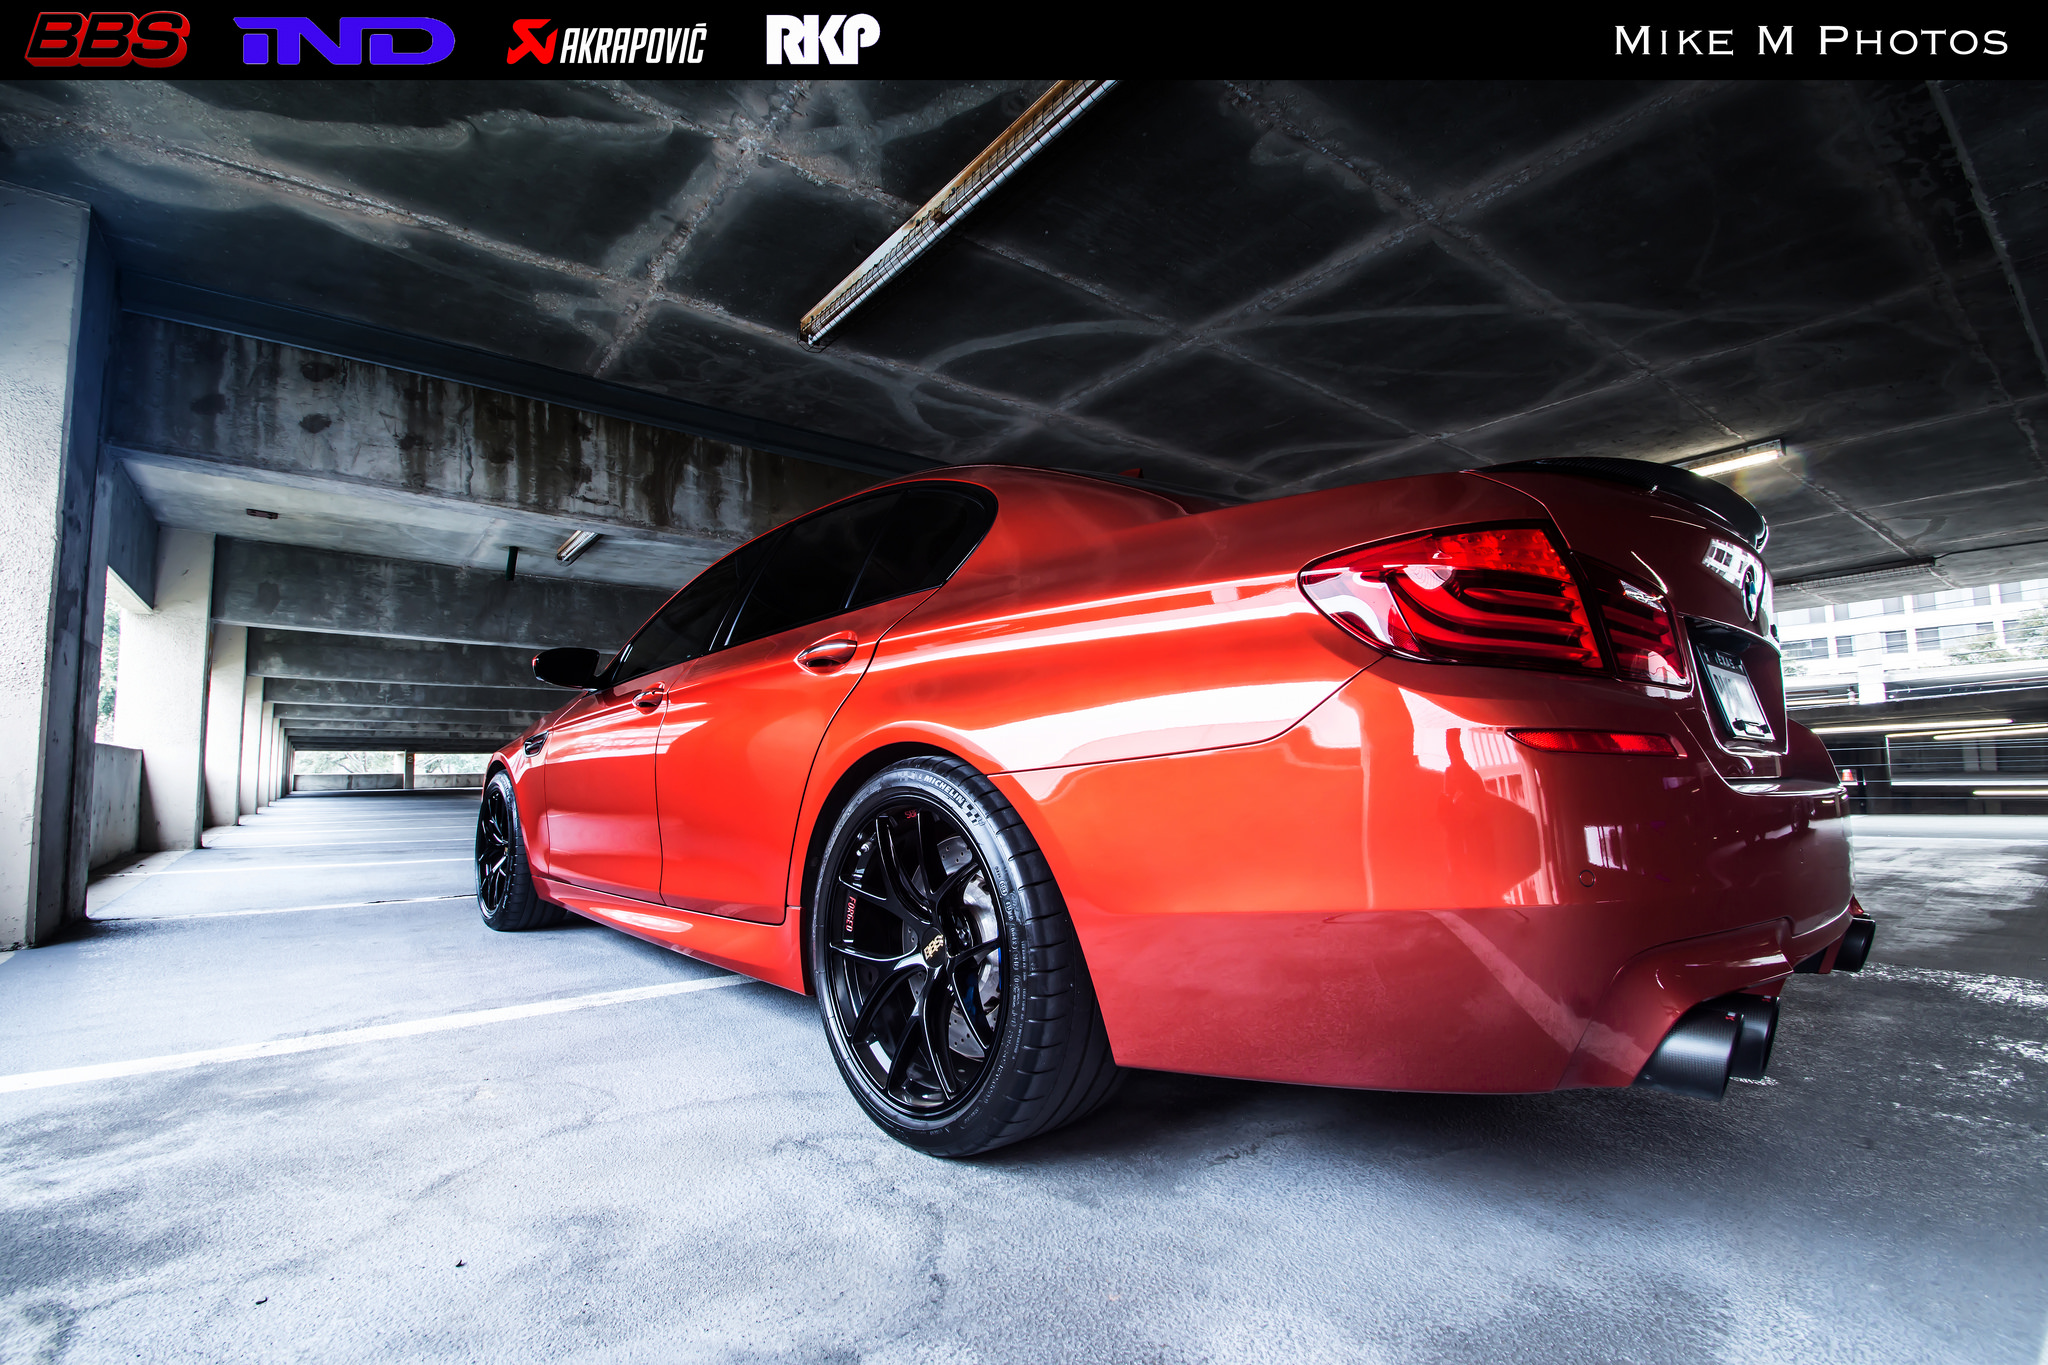 Stunning Sakhir Orange BMW M5 Poses Underground ...